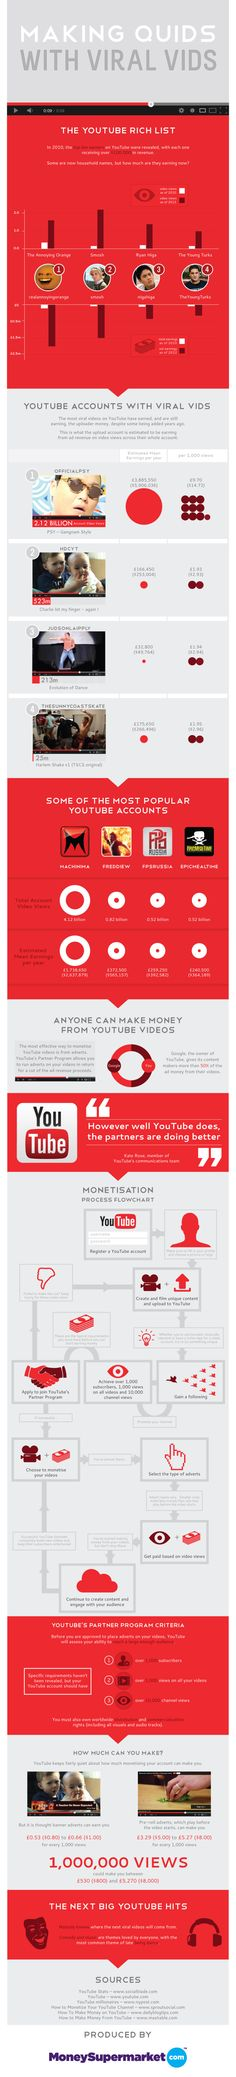 Now video marketing is the best strategy to use viral with anything. If you combine this with marketing via email you will reach an extensive audience. Social Media Tips, Social Networks, Social Media Marketing, Online Marketing, Social Tv, Viral Marketing, Marketing Training, Content Marketing, Earn Money From Home